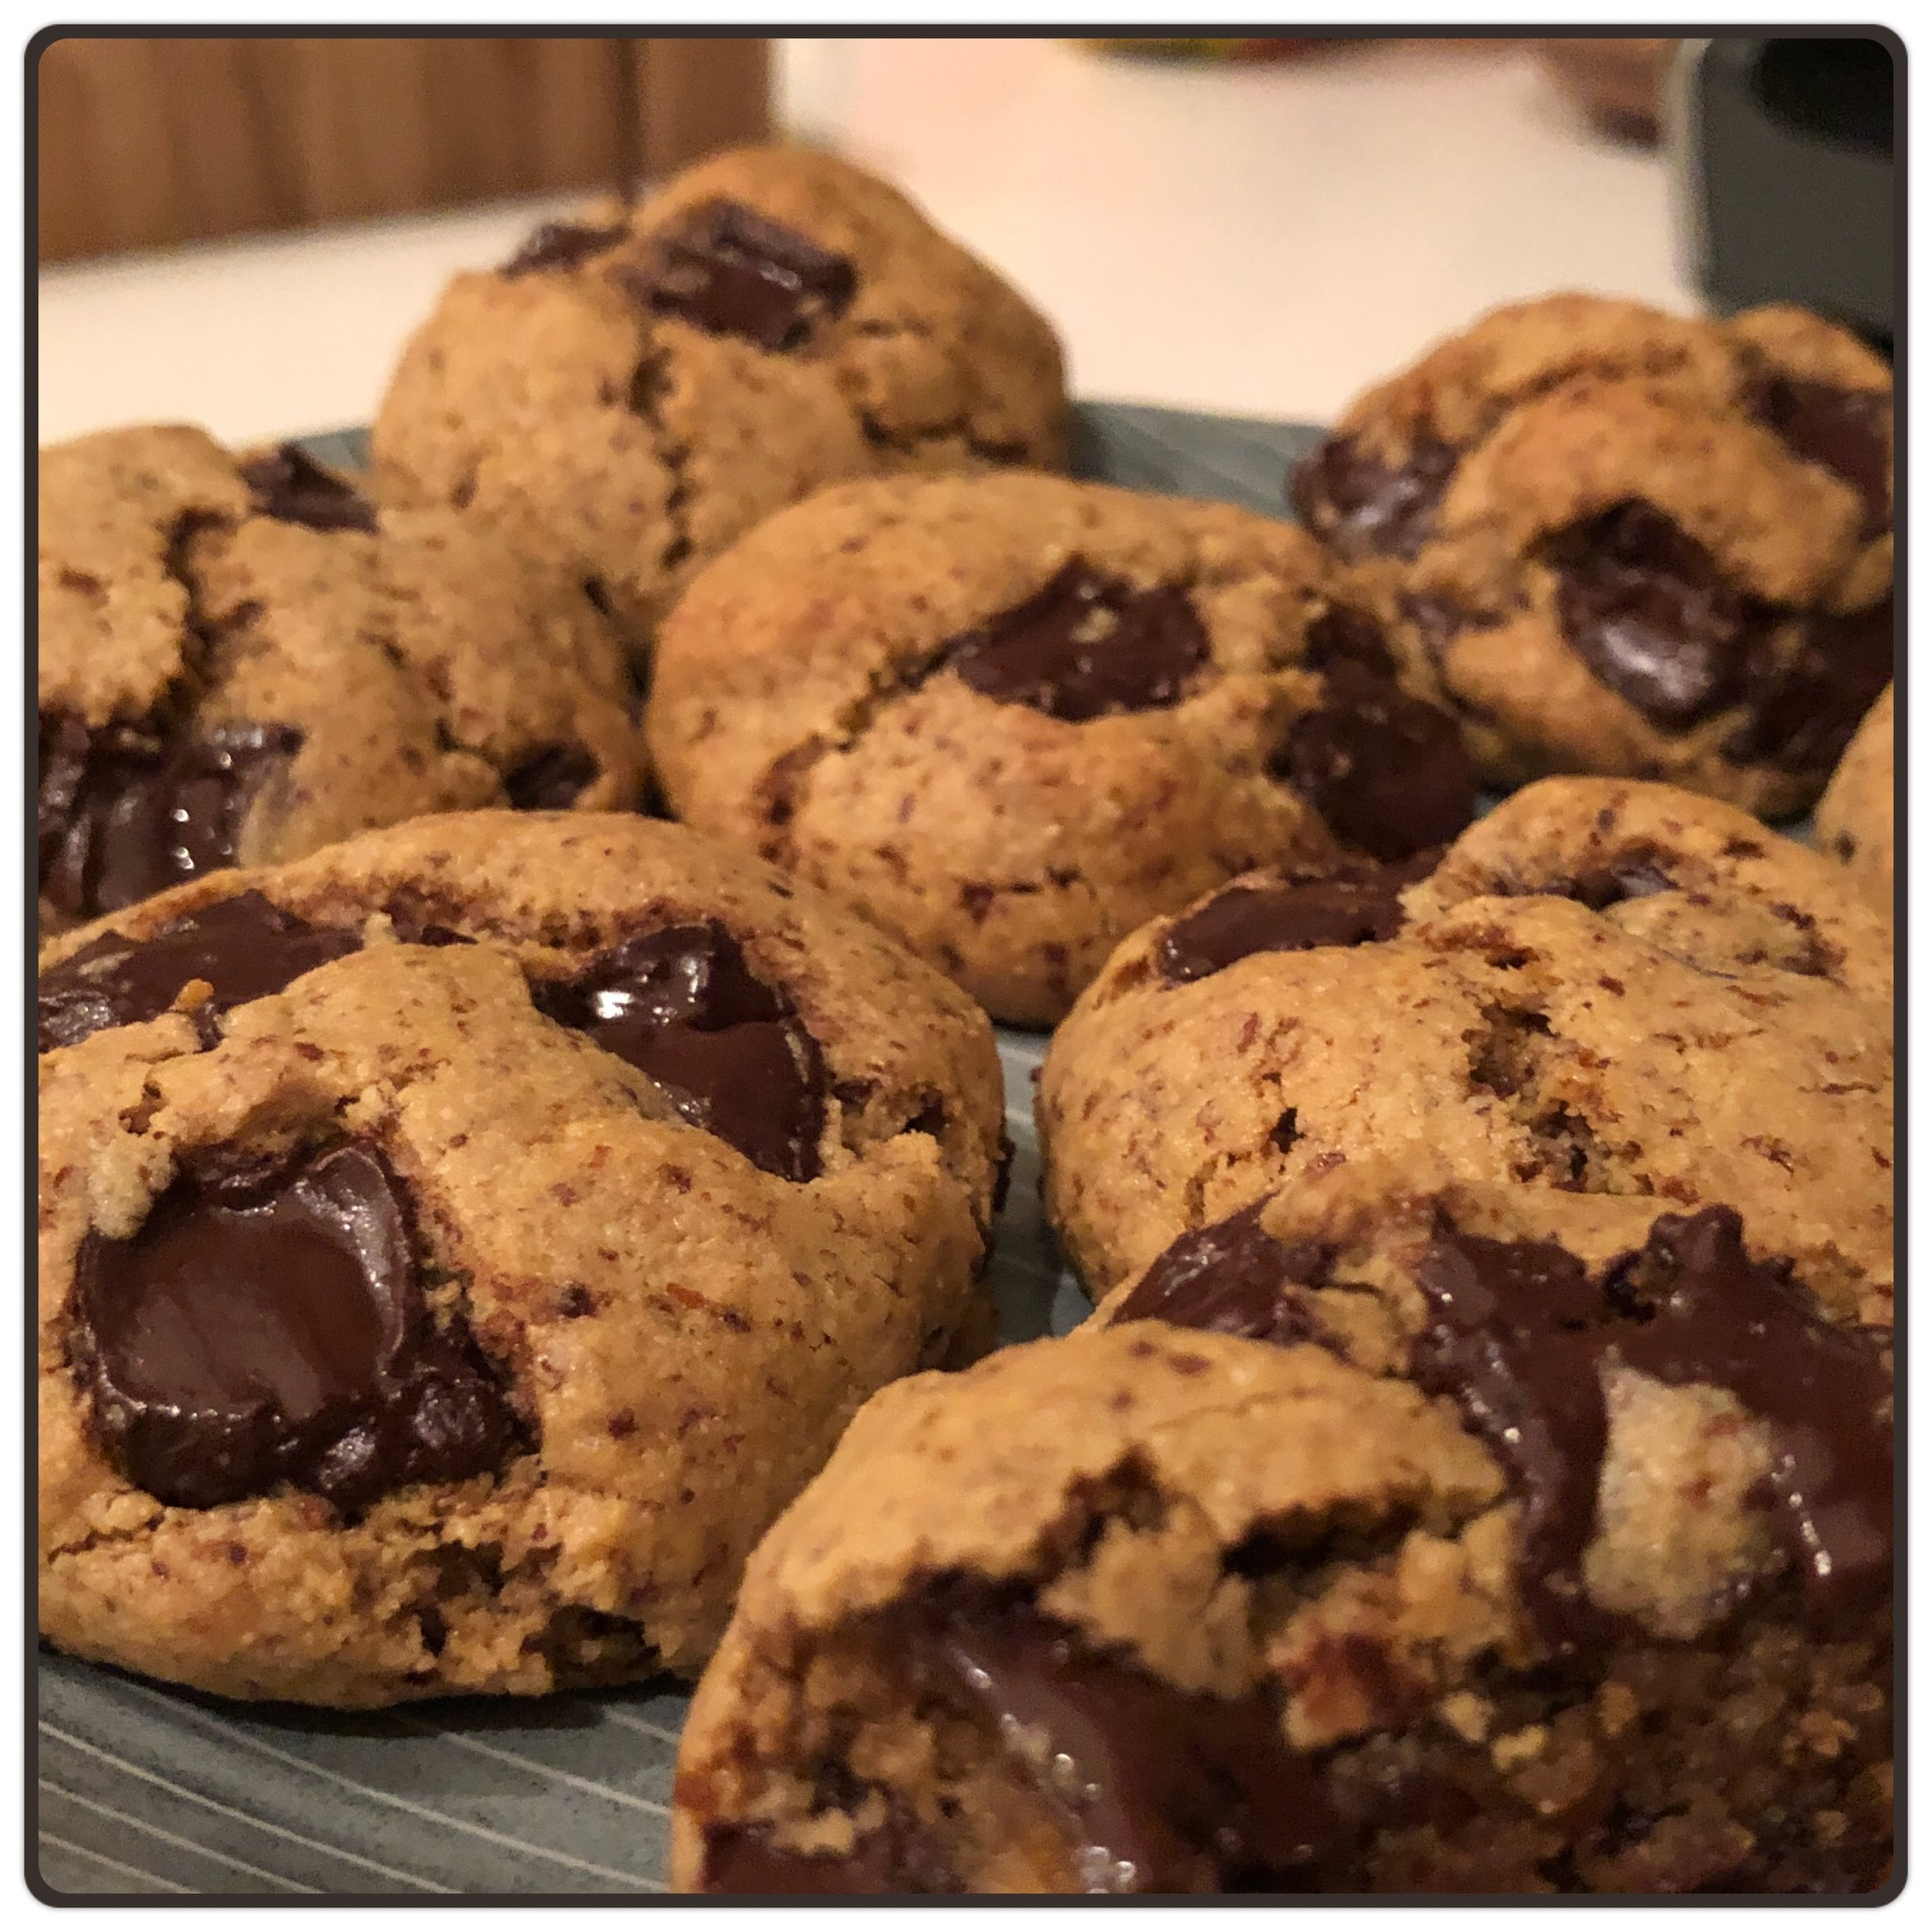 Chocolate Chip Cookies   Dry Ingredients:  1 1/2 cups Almond Flour 2 tbsp Coconut Flour  1/3 cup Coconut Sugar 1/2 tsp Baking Soda 1/4 tsp Salt 1/2 cup Chocolate Chips (60% or higher)  Wet Ingredients:  1/2 cup Butter (melted) 1  Egg 1 1/2 tsp Vanilla Extract  Directions:  1. Preheat oven to 350 degrees F, grease baking sheet or line with parchment paper.  2. Combine all dry ingredients except chocolate chips in a large bowl.   3.  Melt the butter and combine with the egg and vanilla extract in a small bowl.    4. Combine wet and dry ingredients in the large bowl and add chocolate chips.                            5. Roll the dough into balls approx. 1 inch in diameter, place on baking sheet. 6. Bake for 12-15 min, let cool.